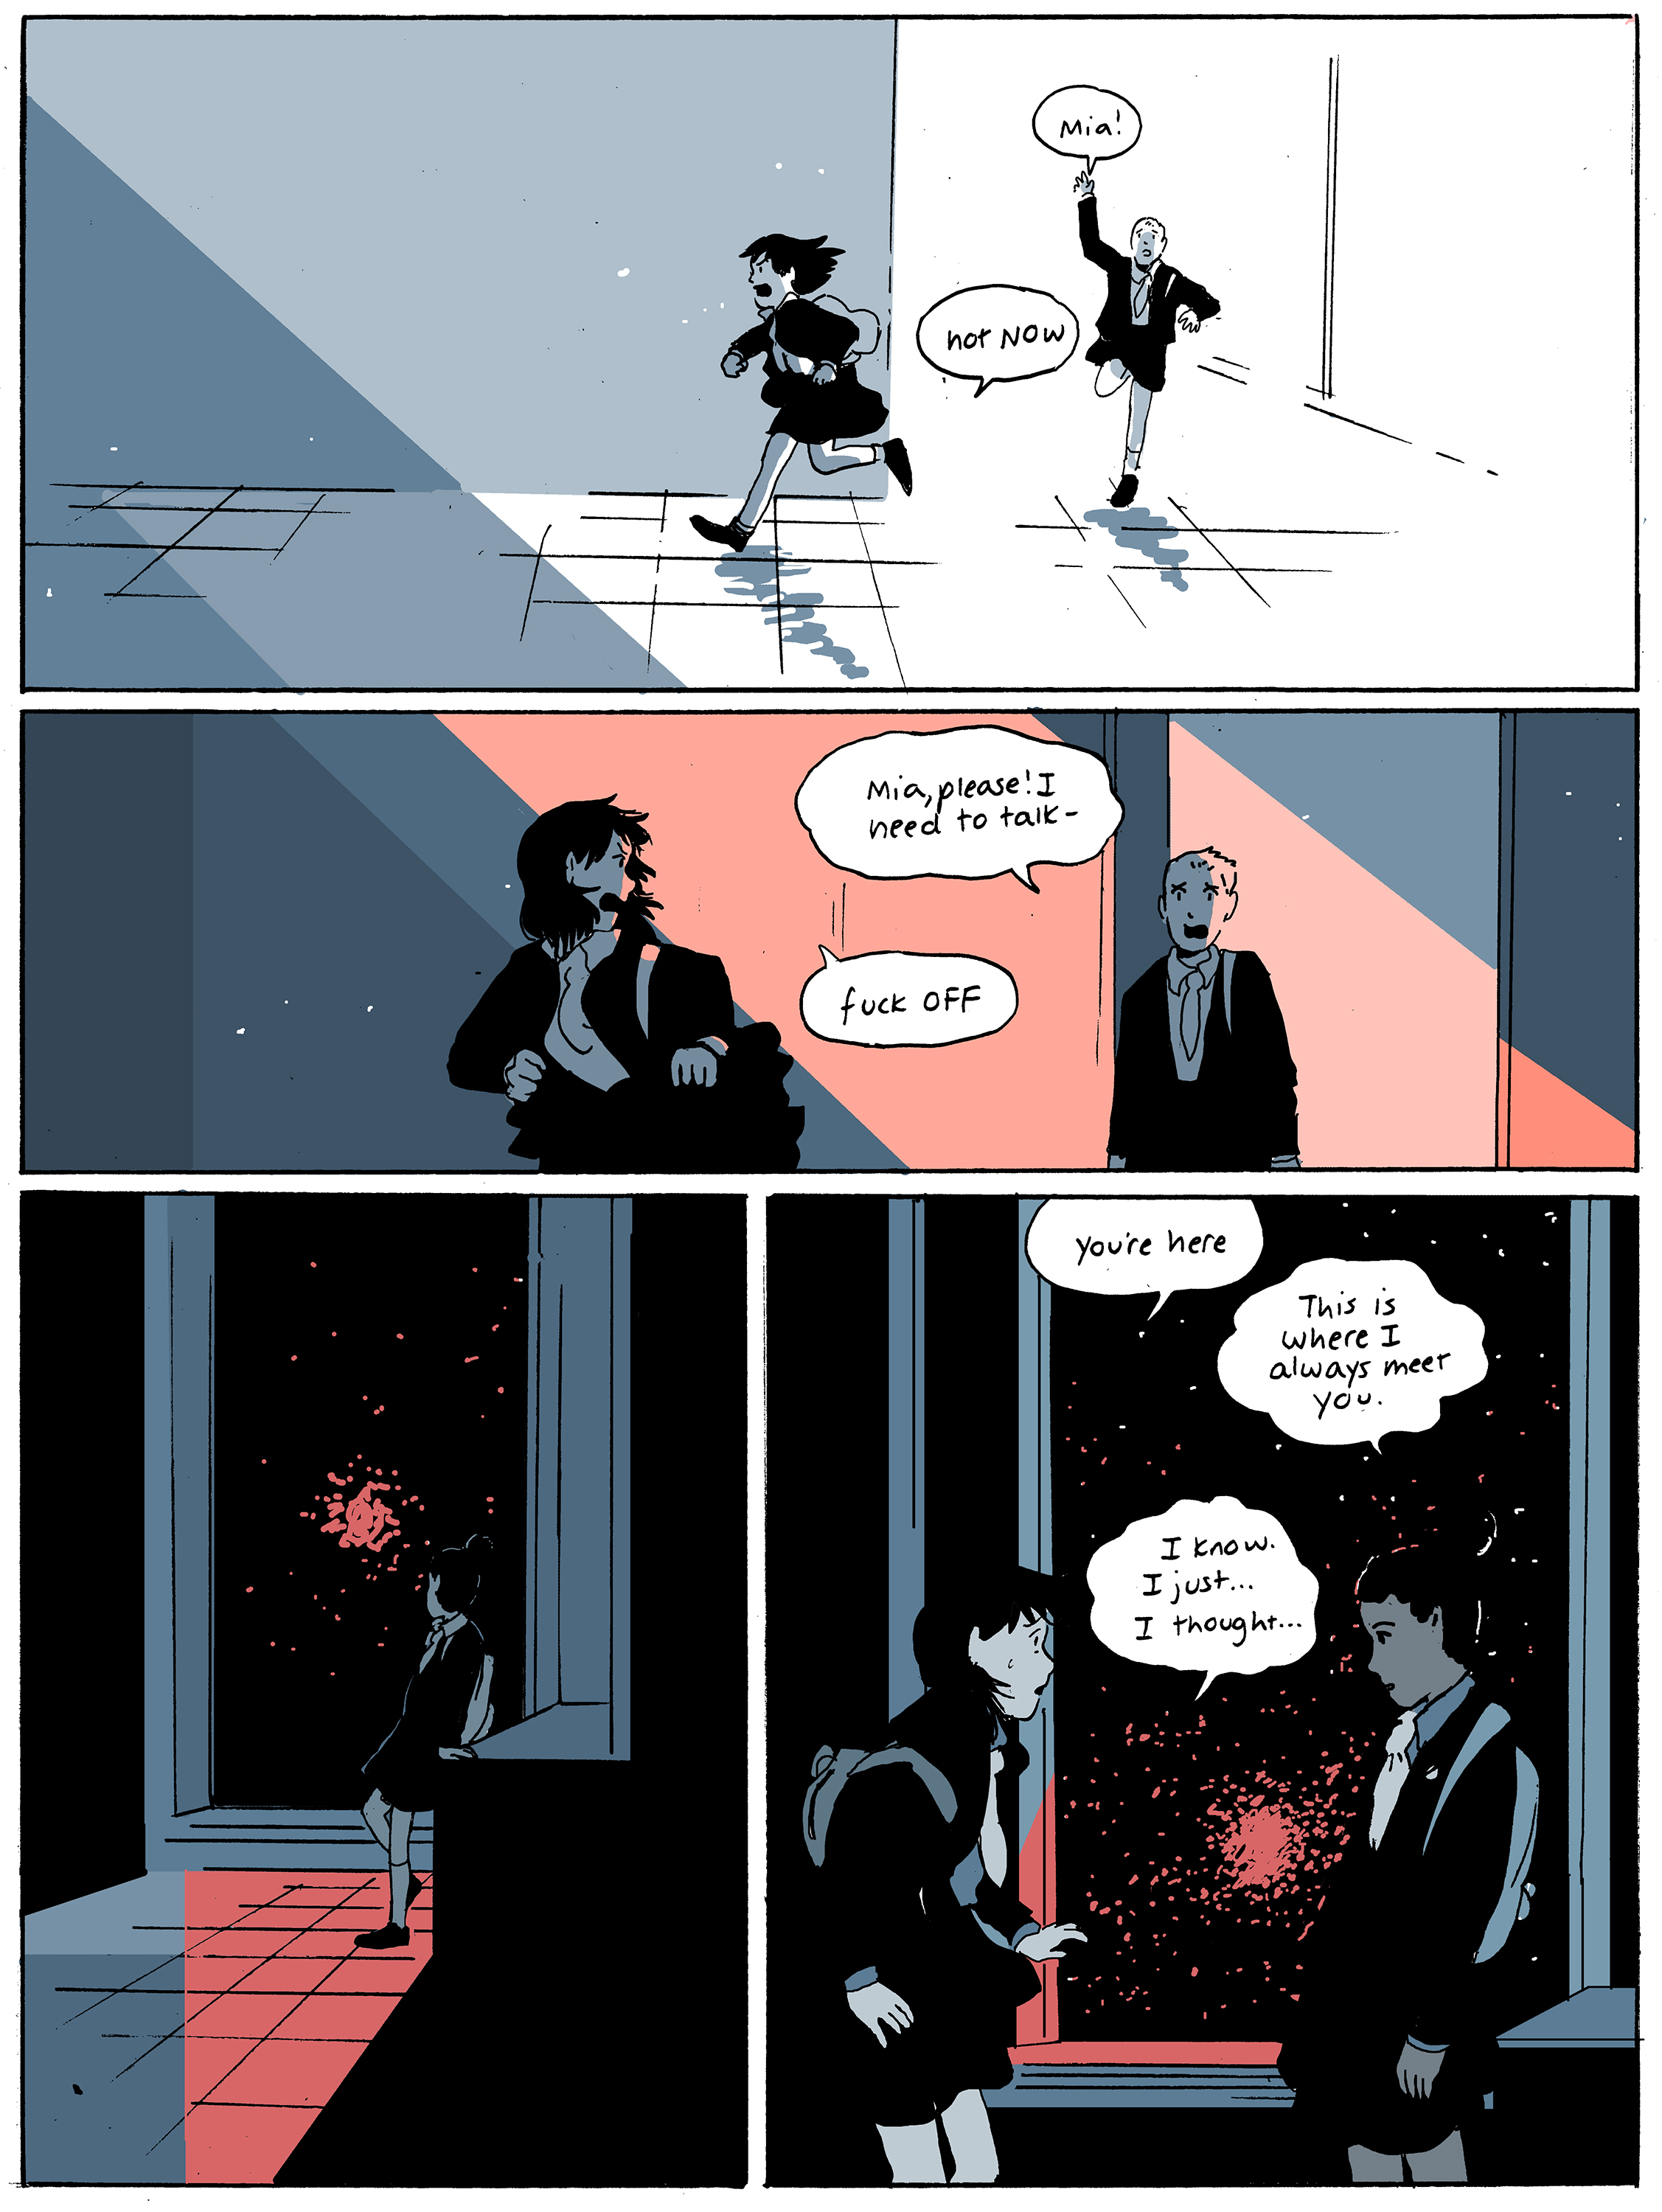 chapter11_page22.jpg